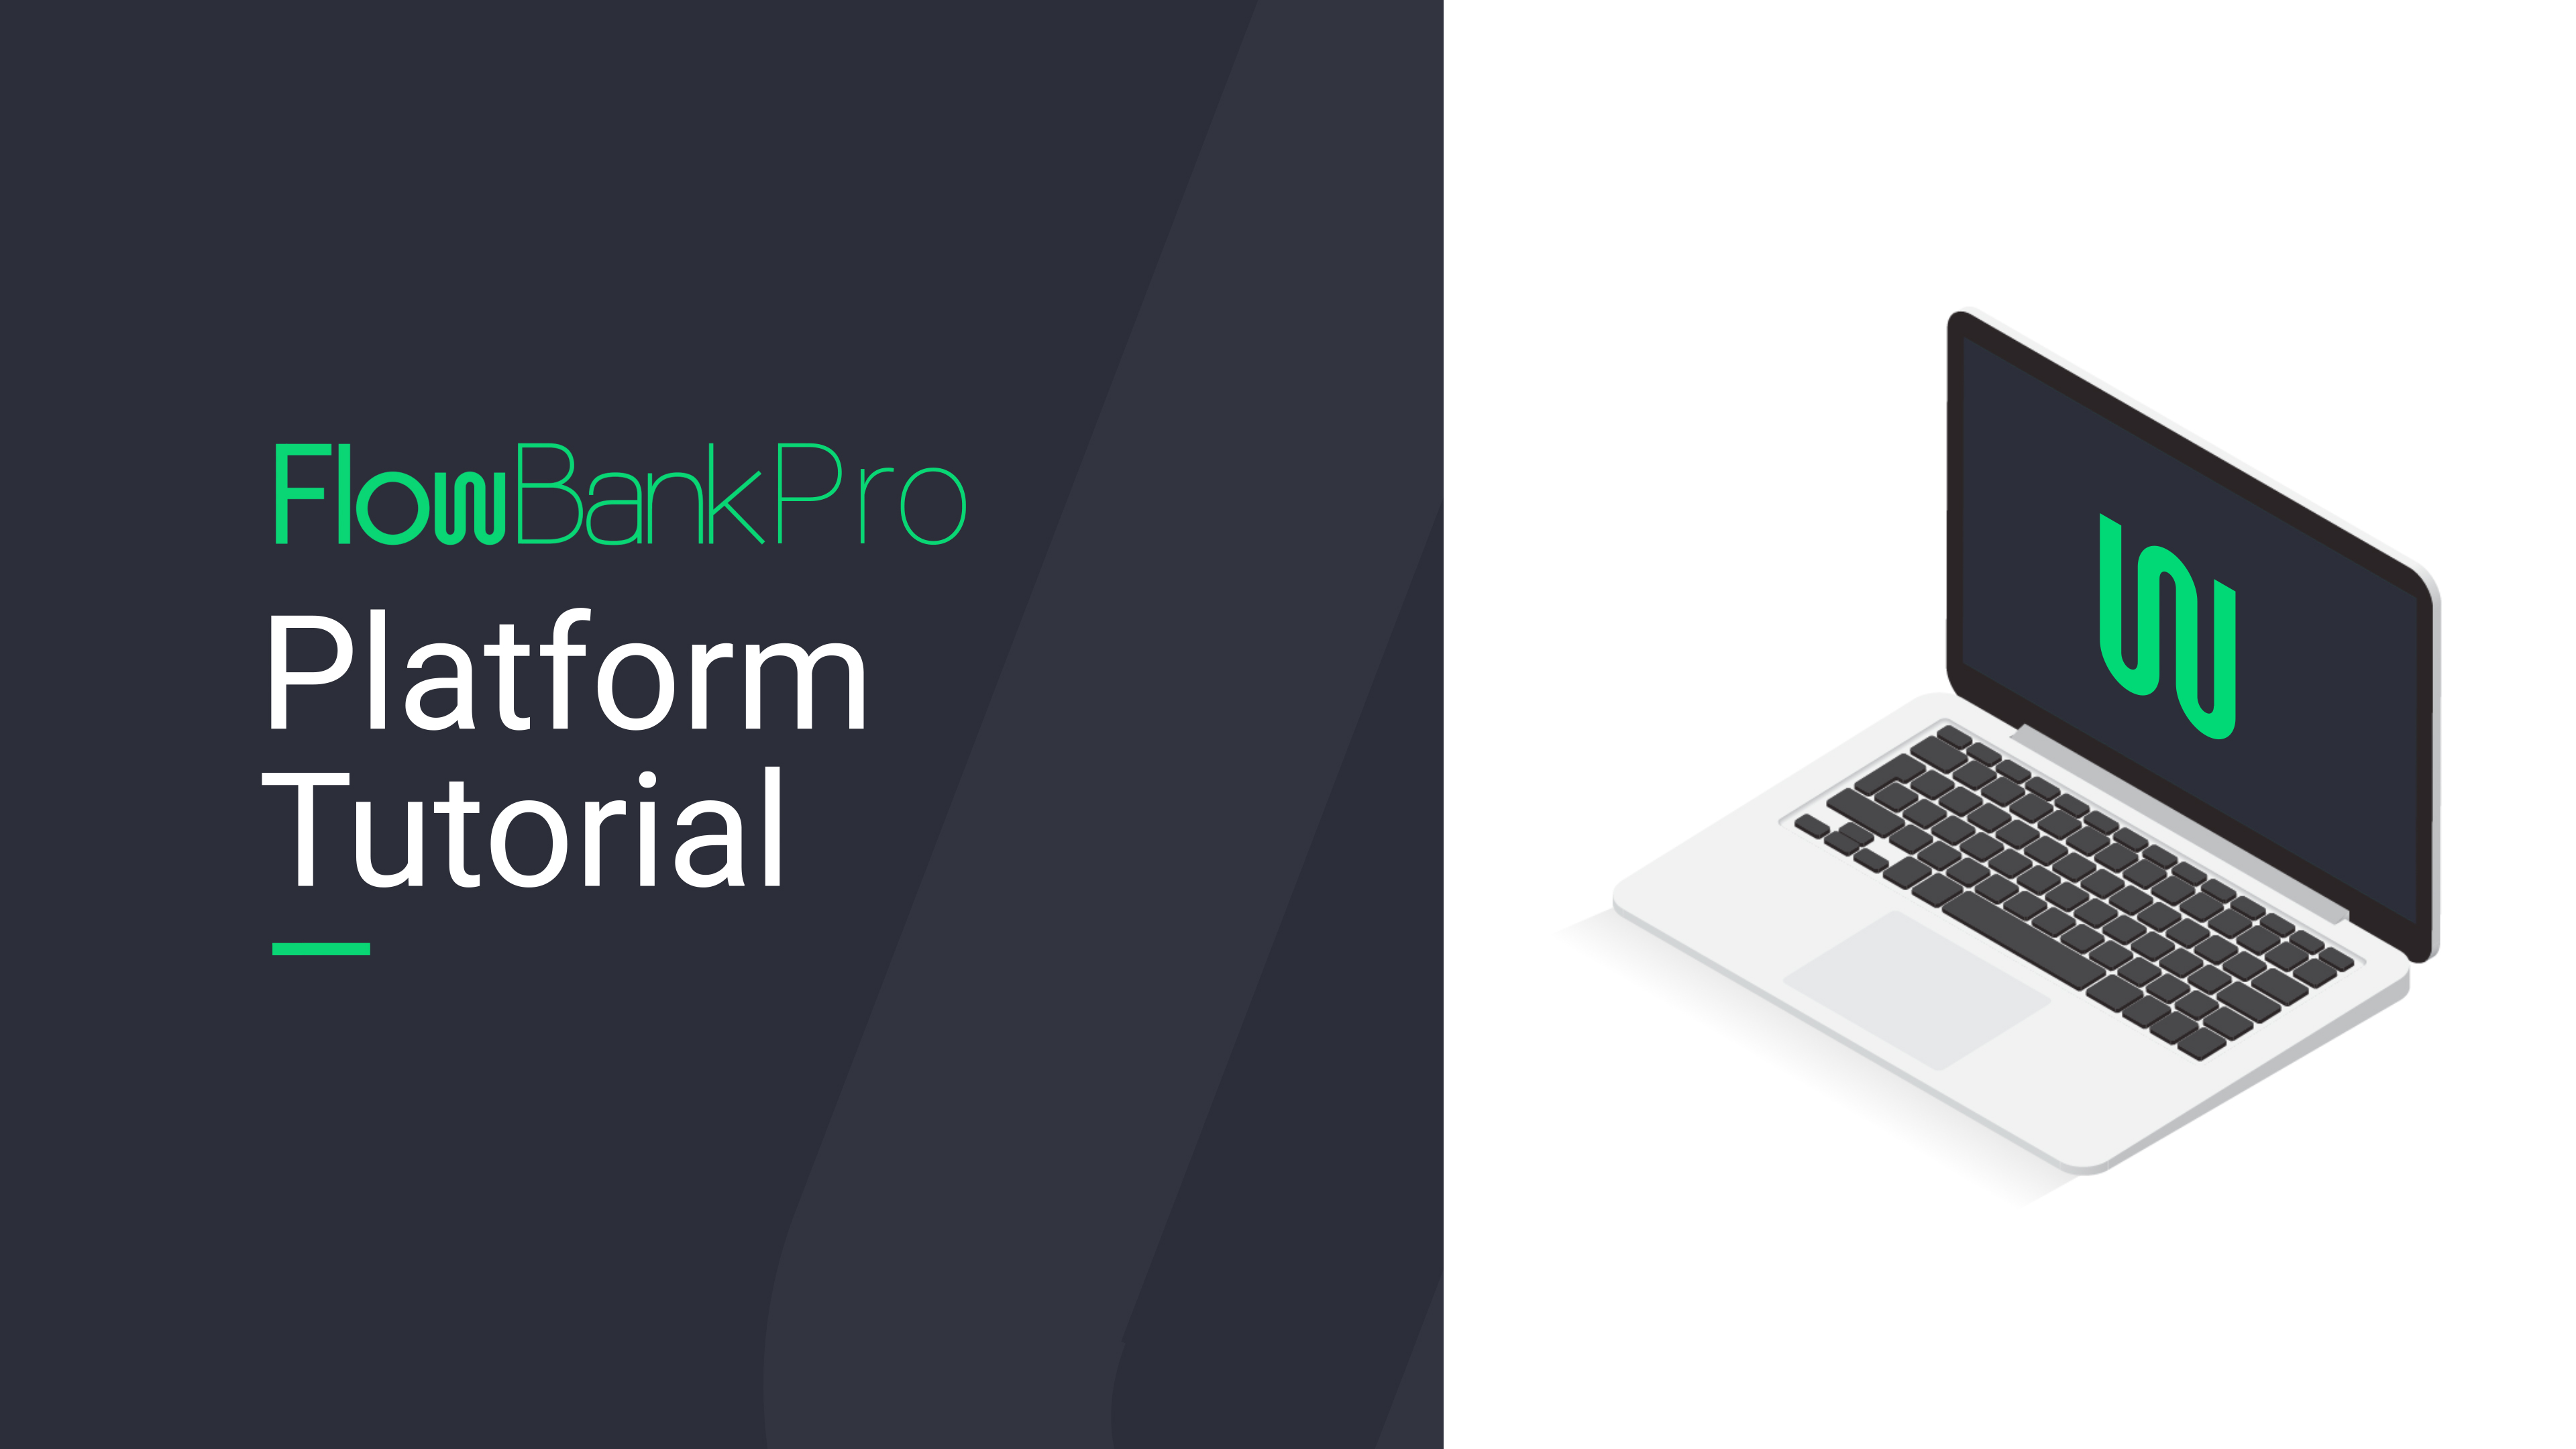 FlowBank Pro Platform Tutorial [video]